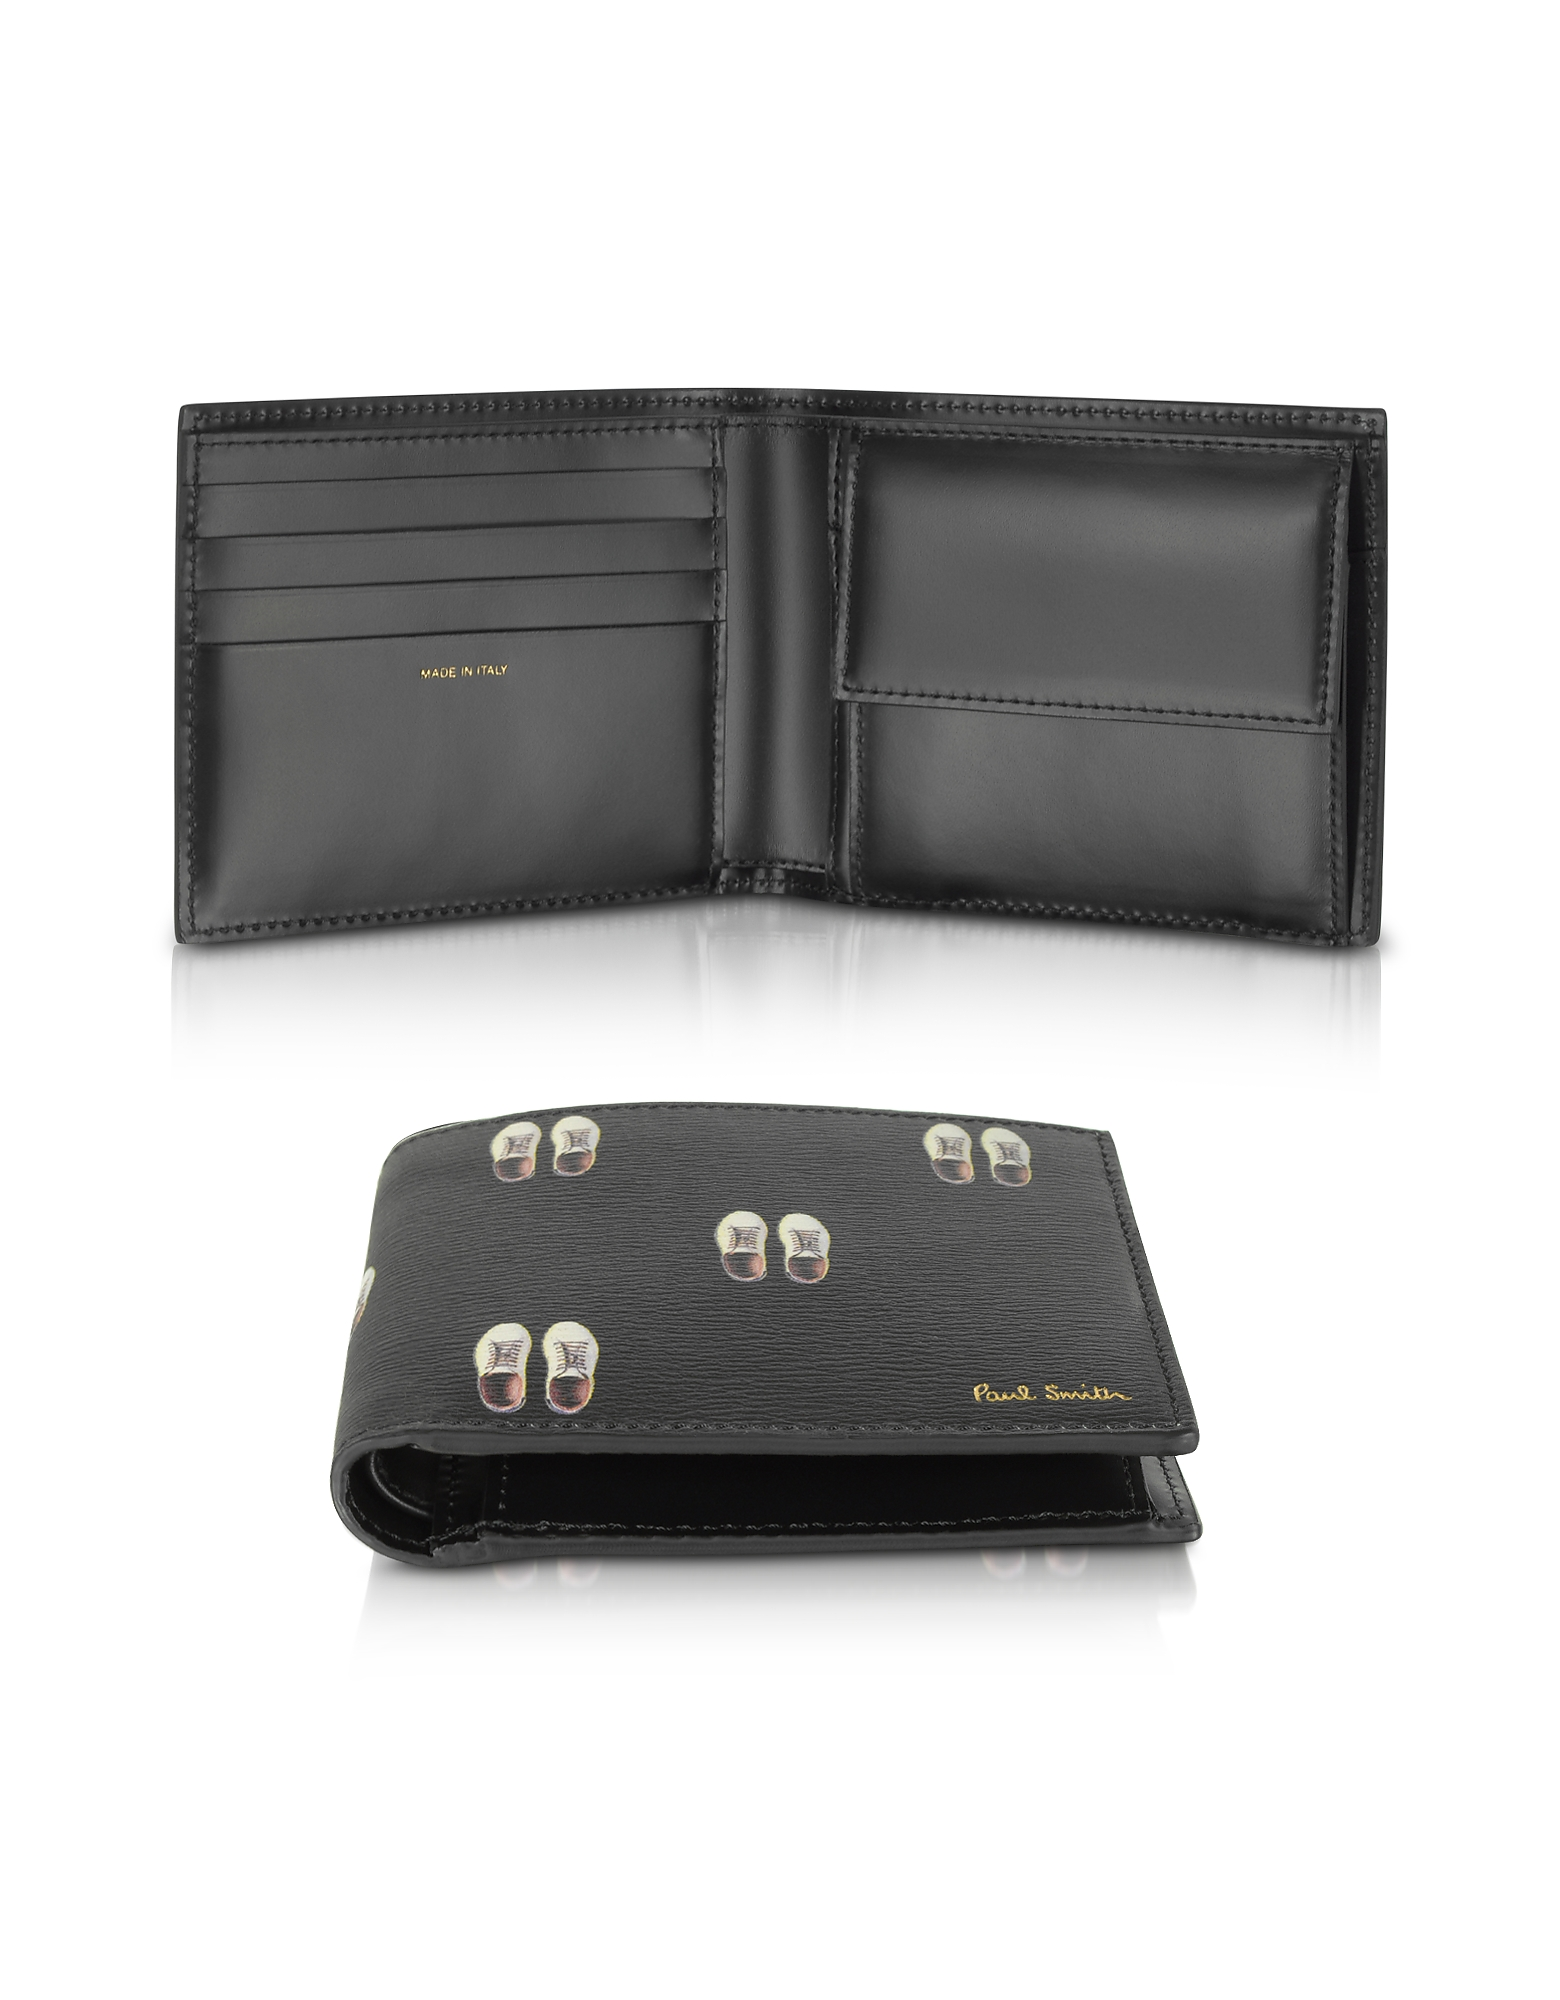 Paul Smith Wallets, Black Leather Basso Print Men's Billfold Wallet